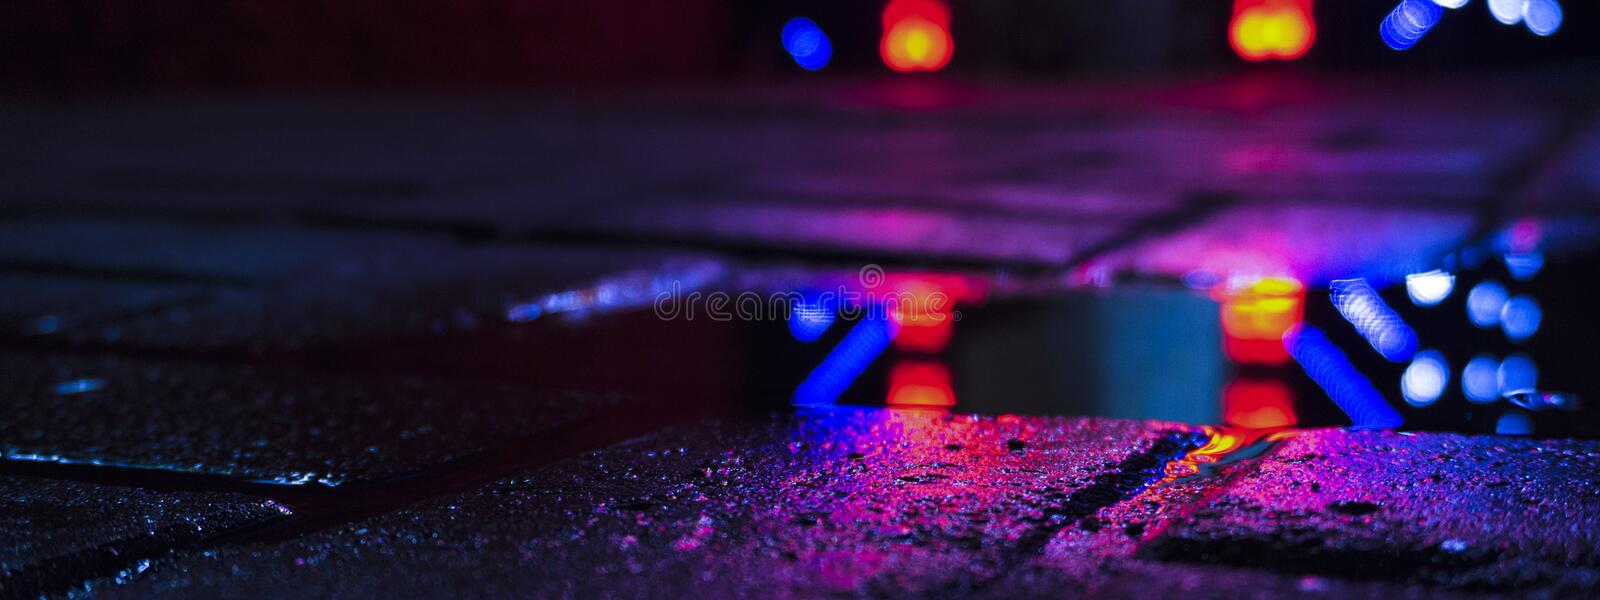 Background of wet asphalt with neon light. Blurred background, night lights of a big city, reflection, puddles. Dark neon bokeh royalty free stock image